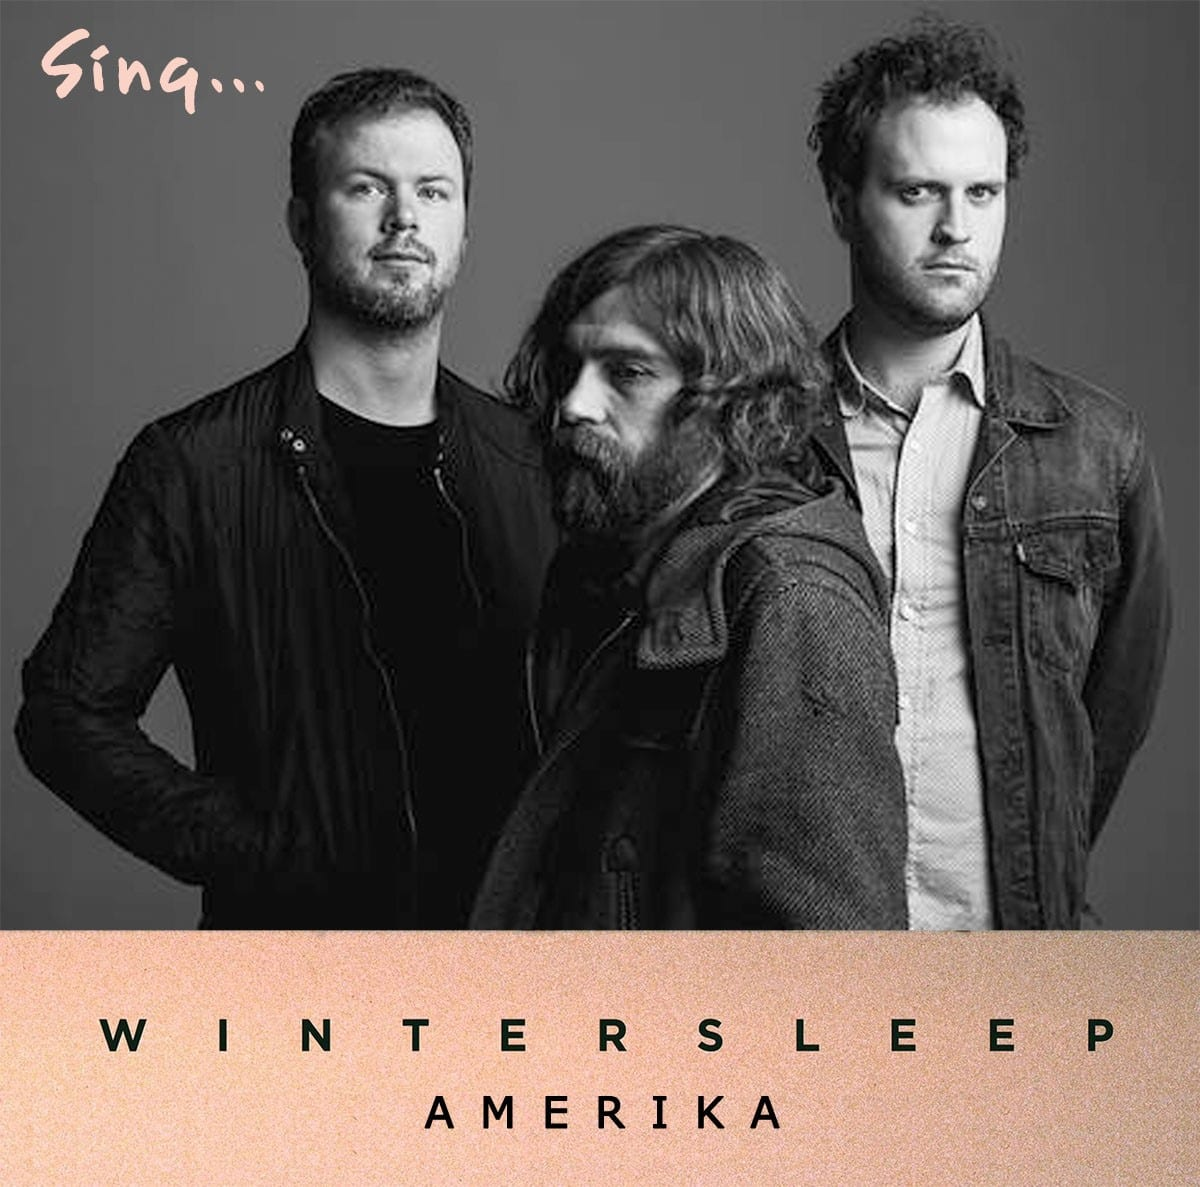 Sing… Amerika by Wintersleep! Drop In Rock Choir! at the Presentation House Theatre North Vancouver